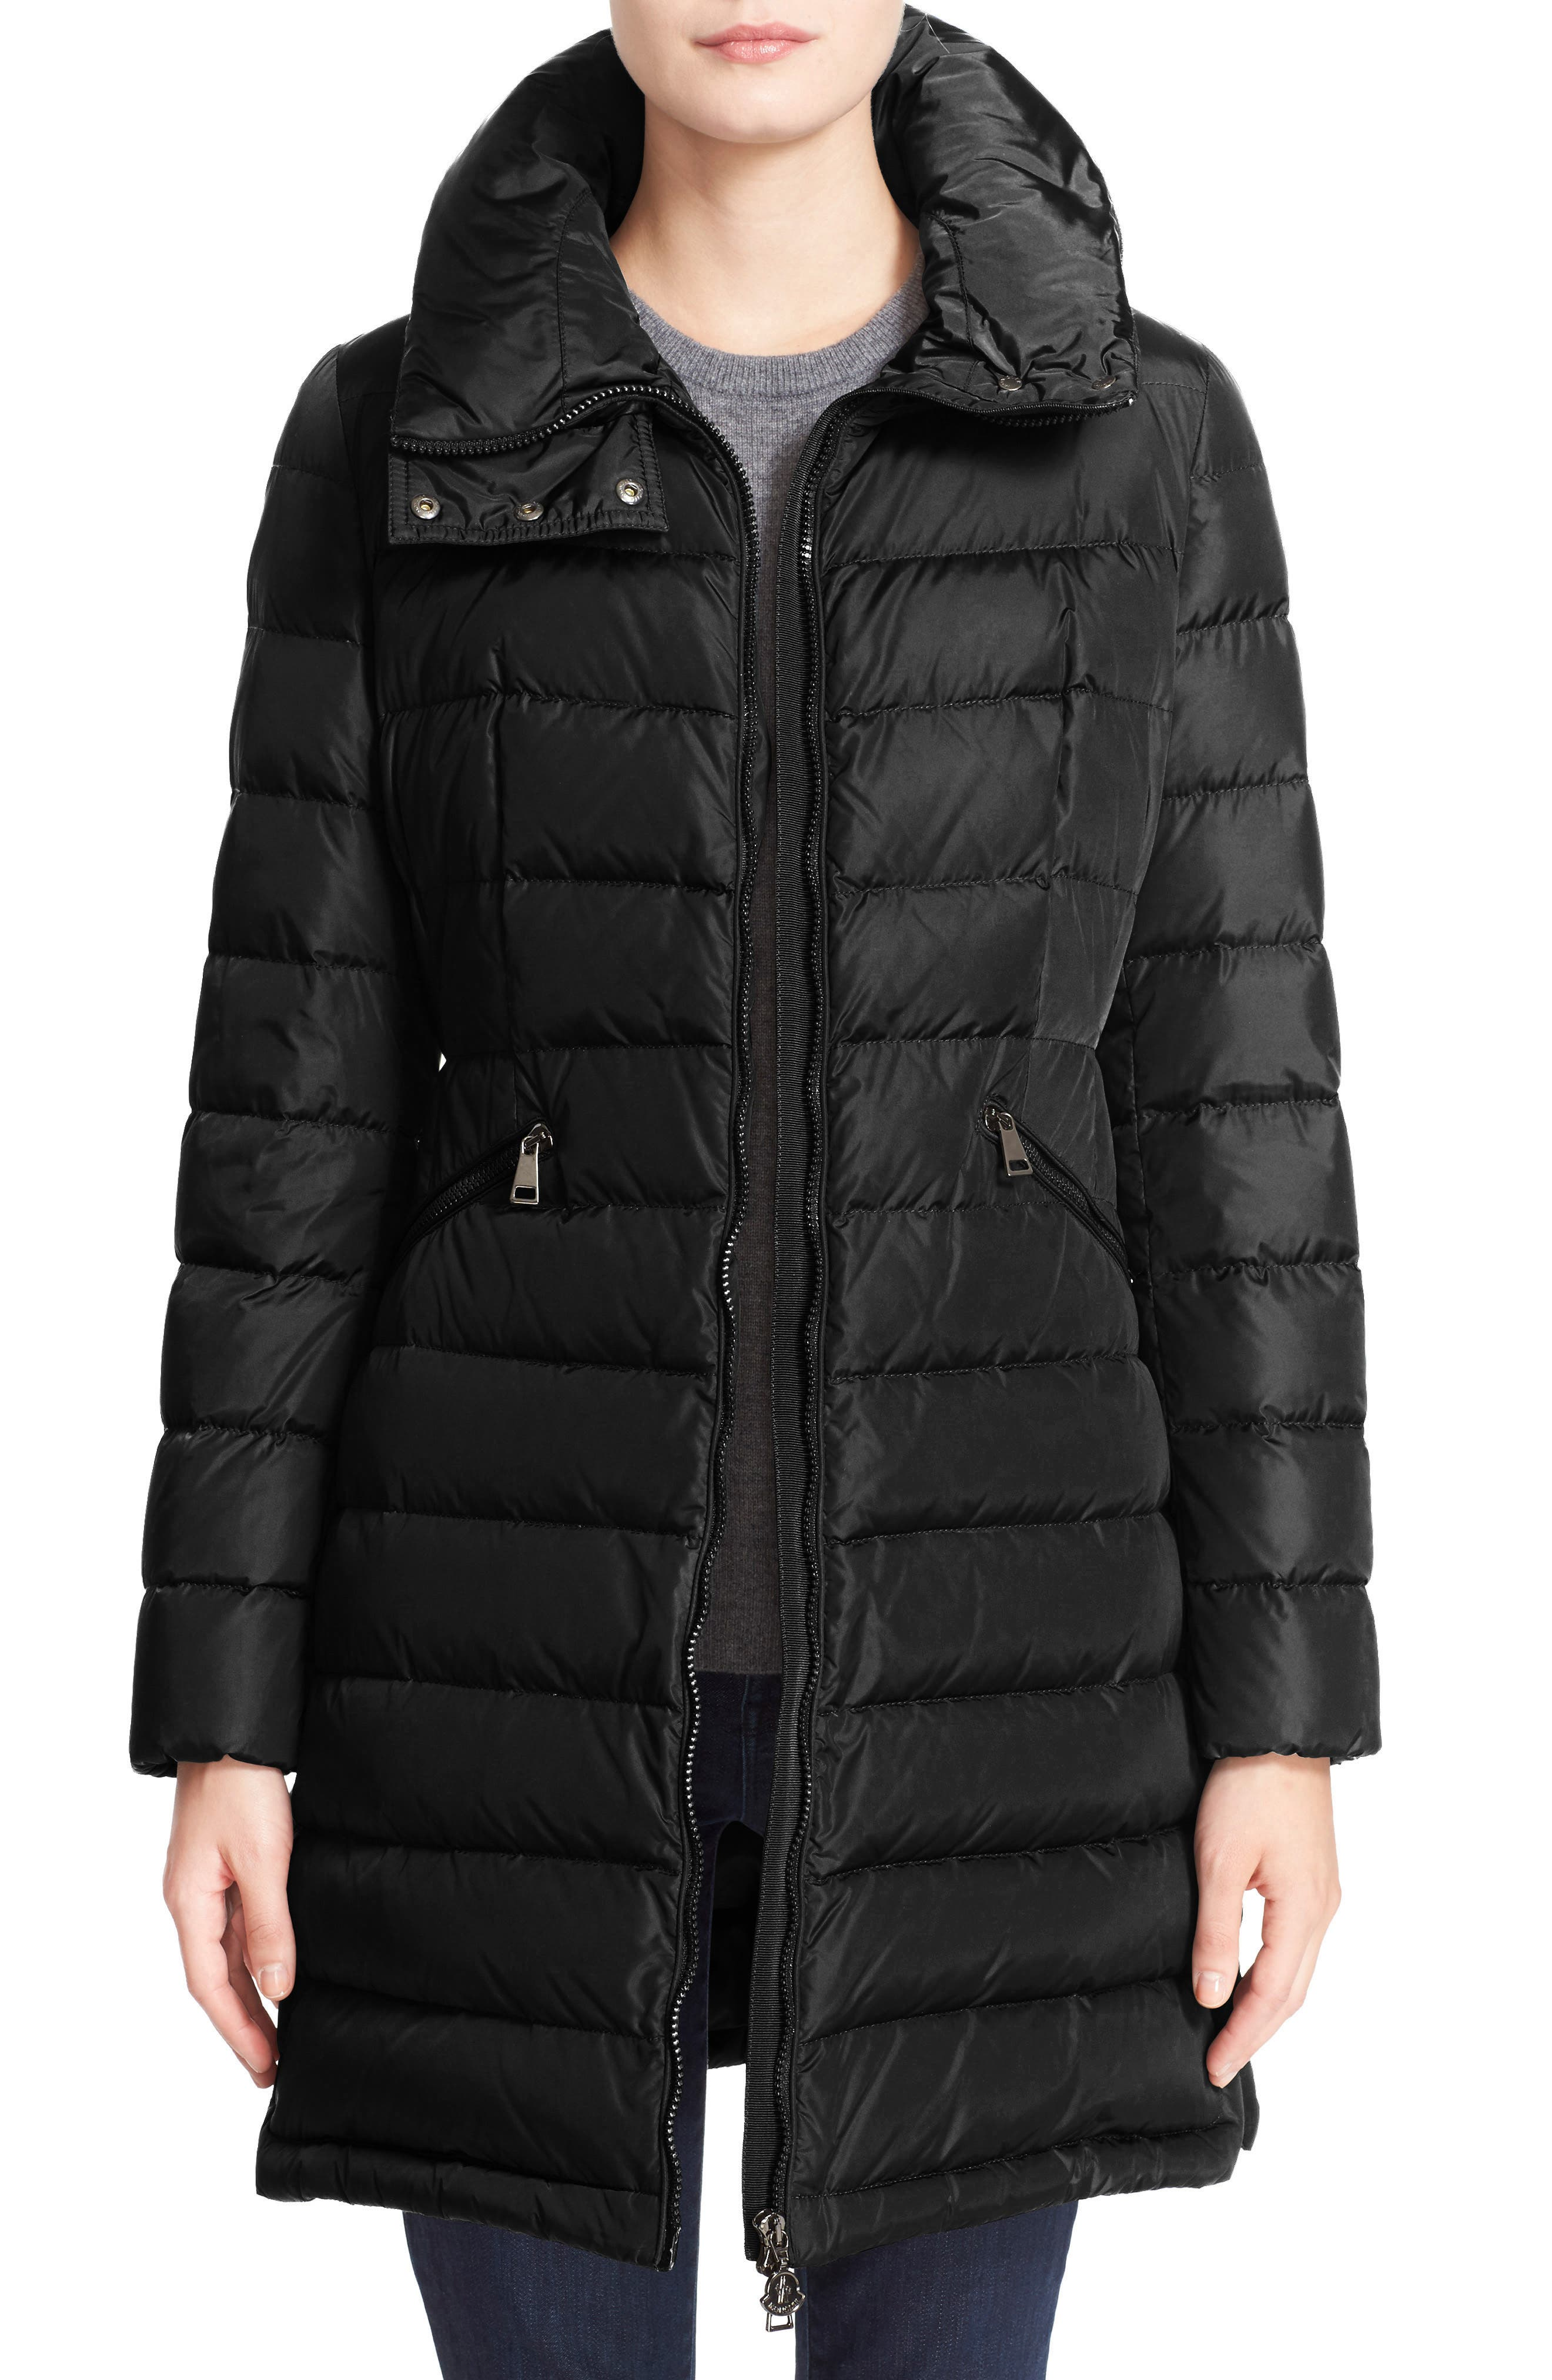 moncler clothing shoes accessories nordstrom rh shop nordstrom com